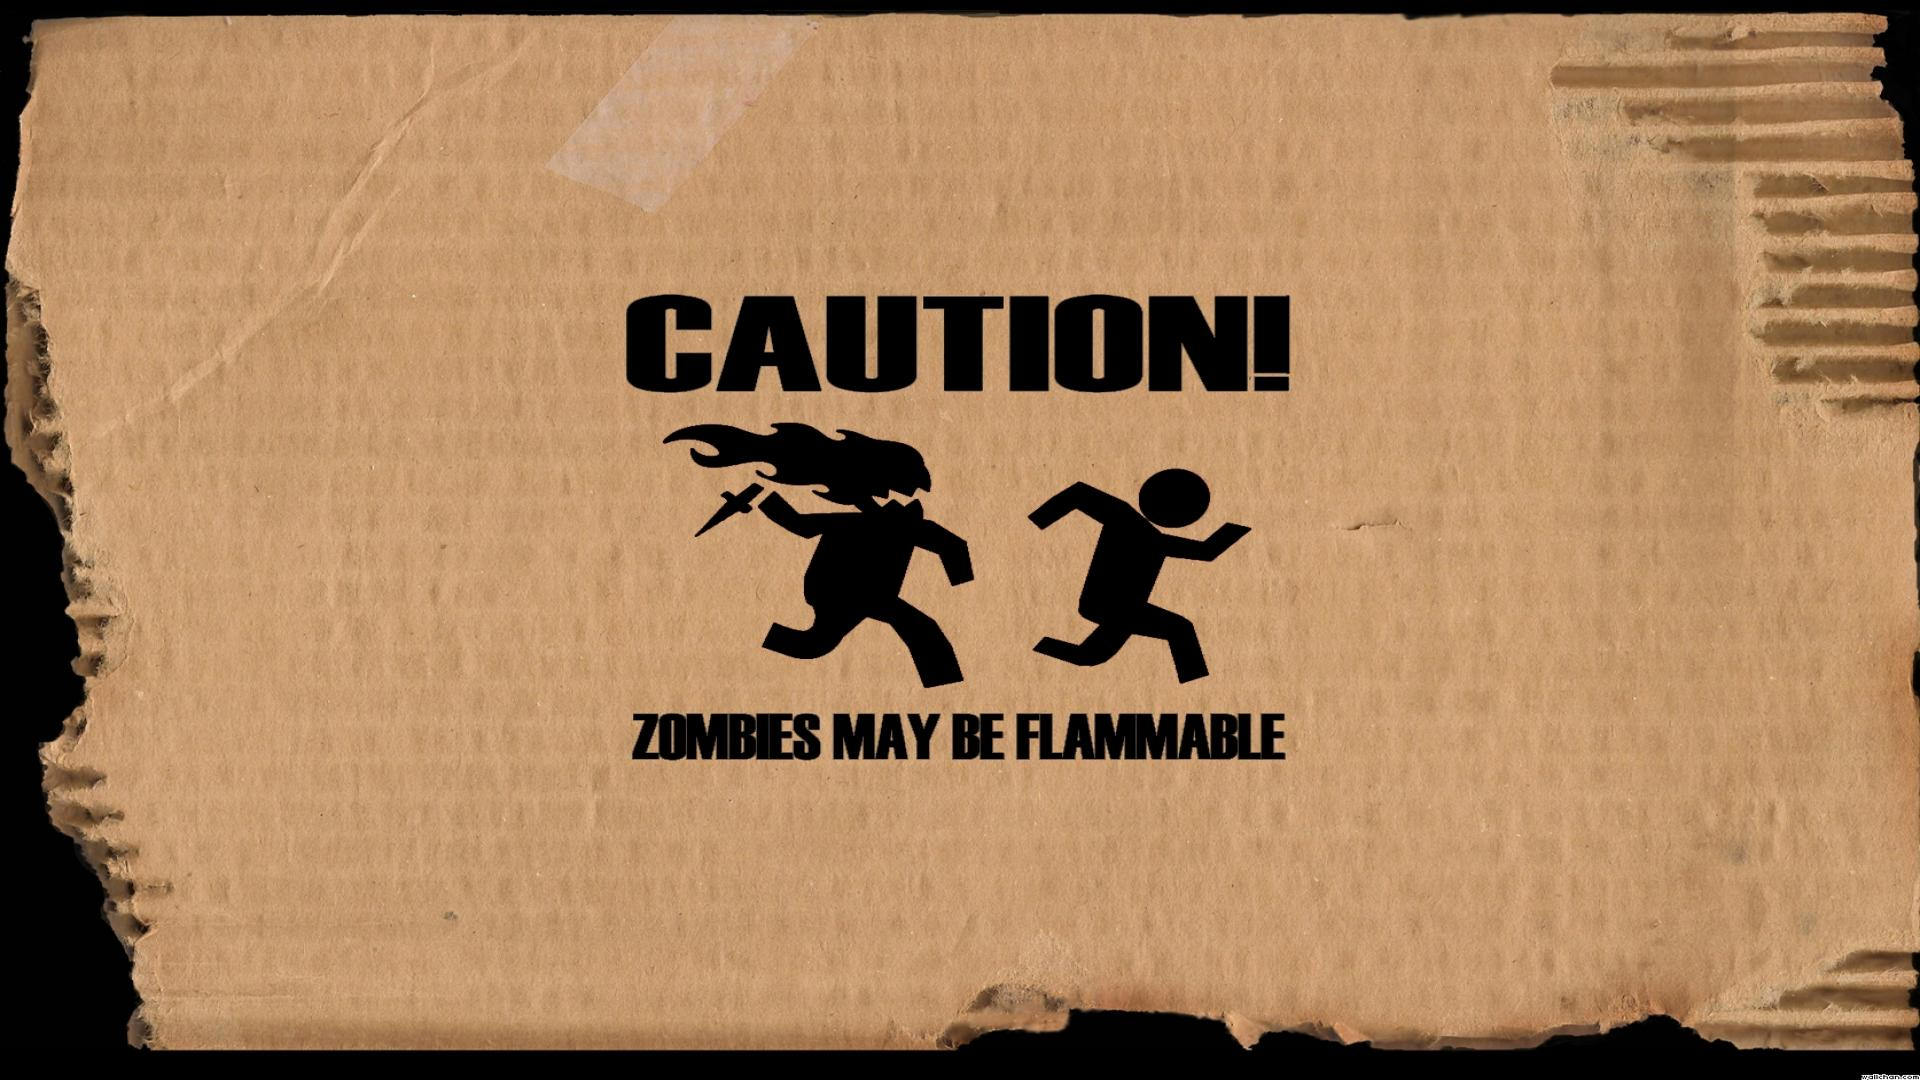 Zombie hd wallpaper background image 1920x1080 id556915 wallpapers id556915 altavistaventures Image collections